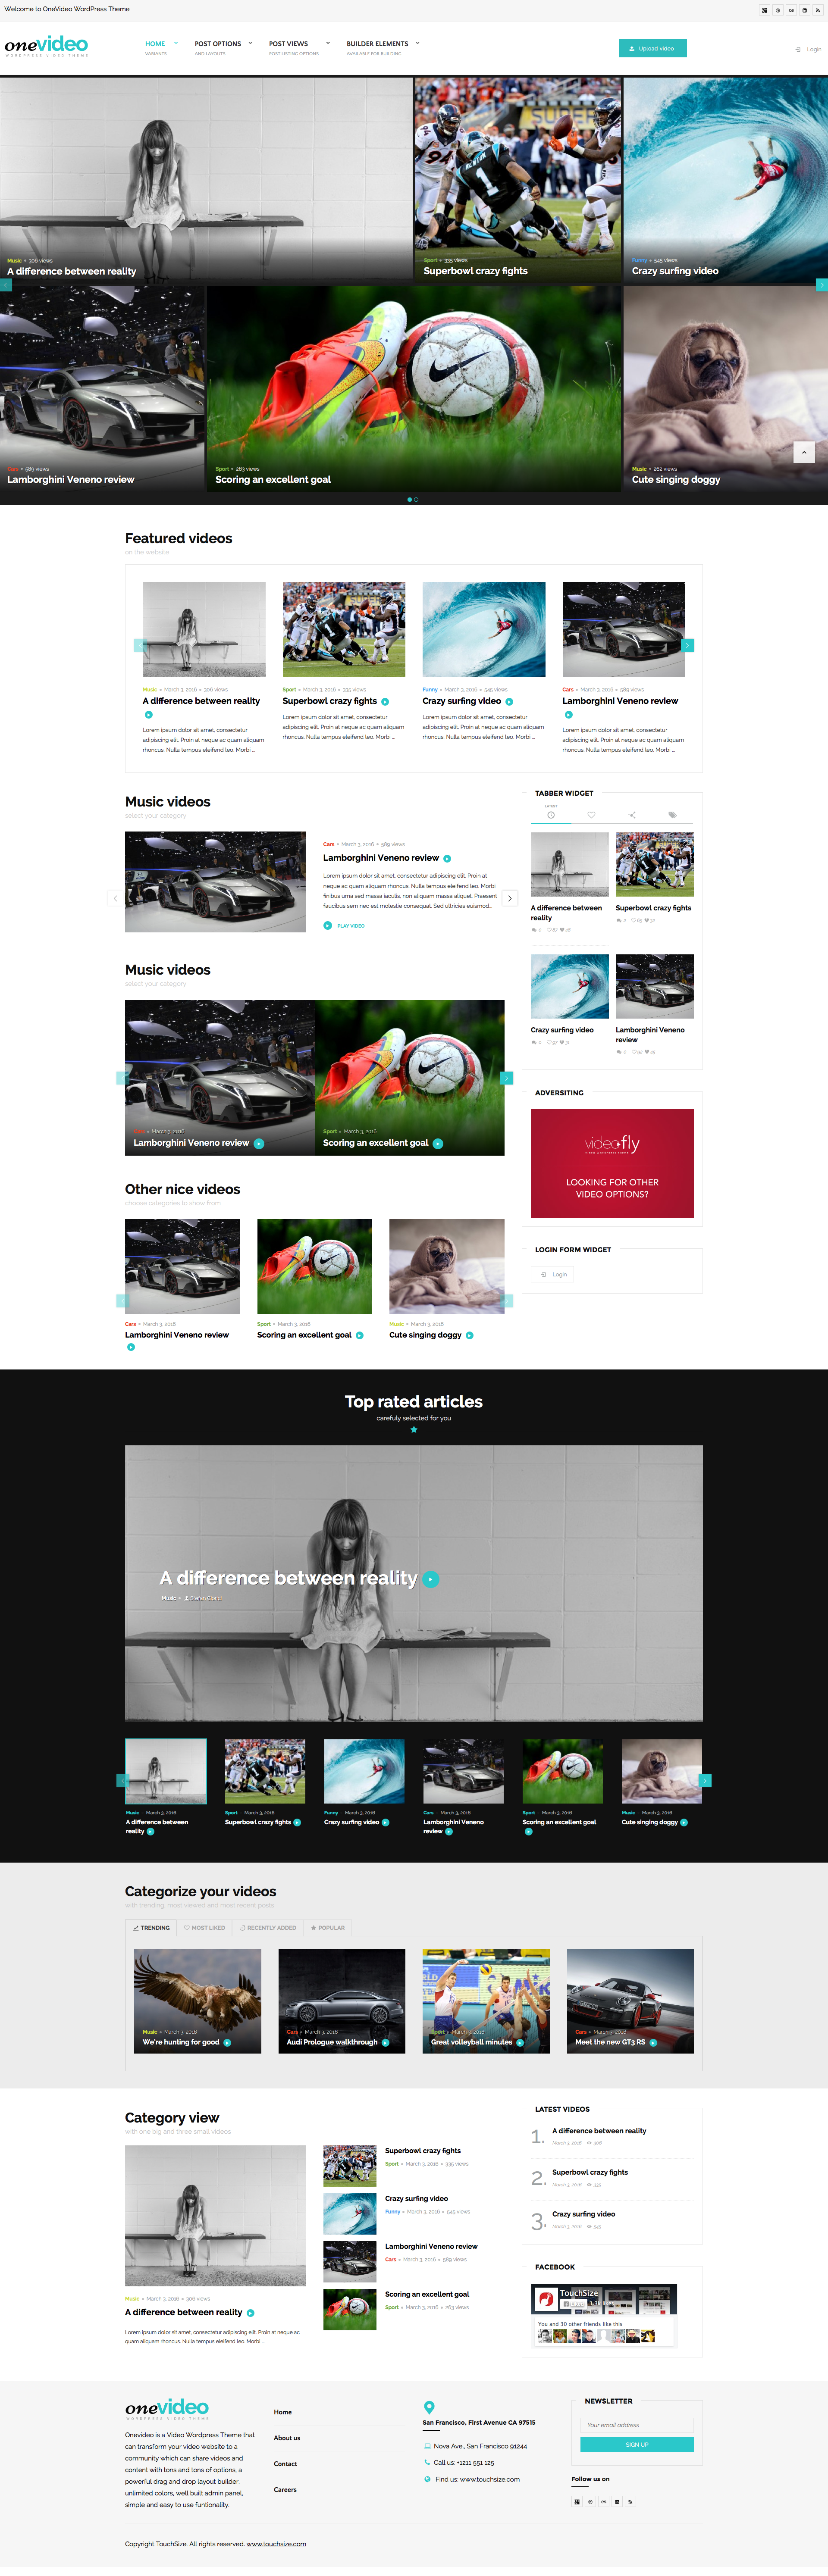 OneVideo - Video Community & Media WordPress Theme by upcode ...